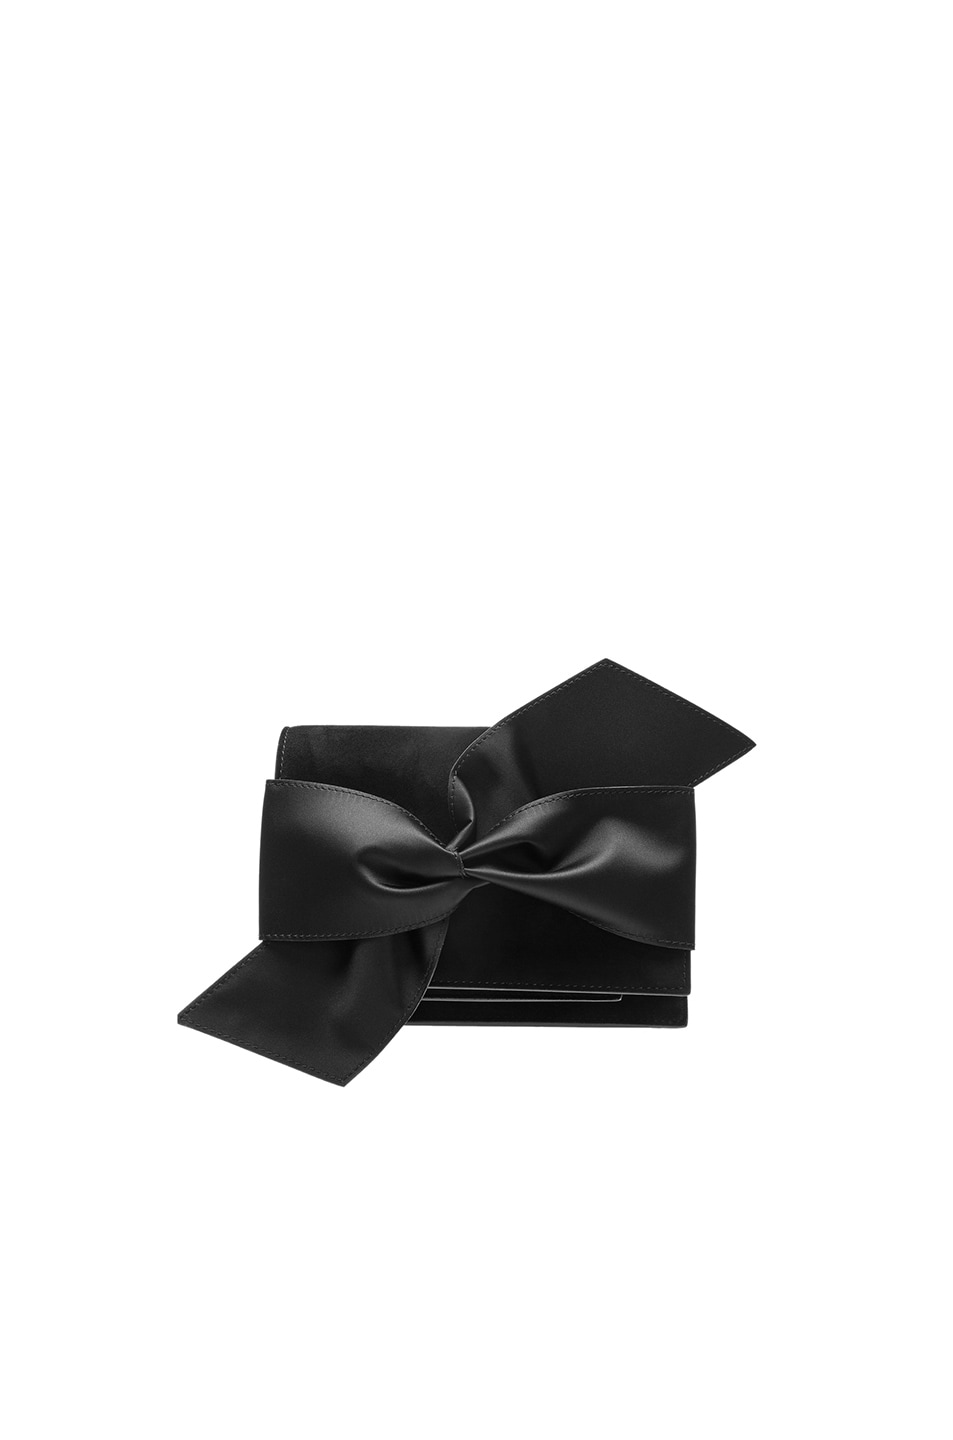 Image 1 of Victoria Beckham Mini Bow Clutch in Black